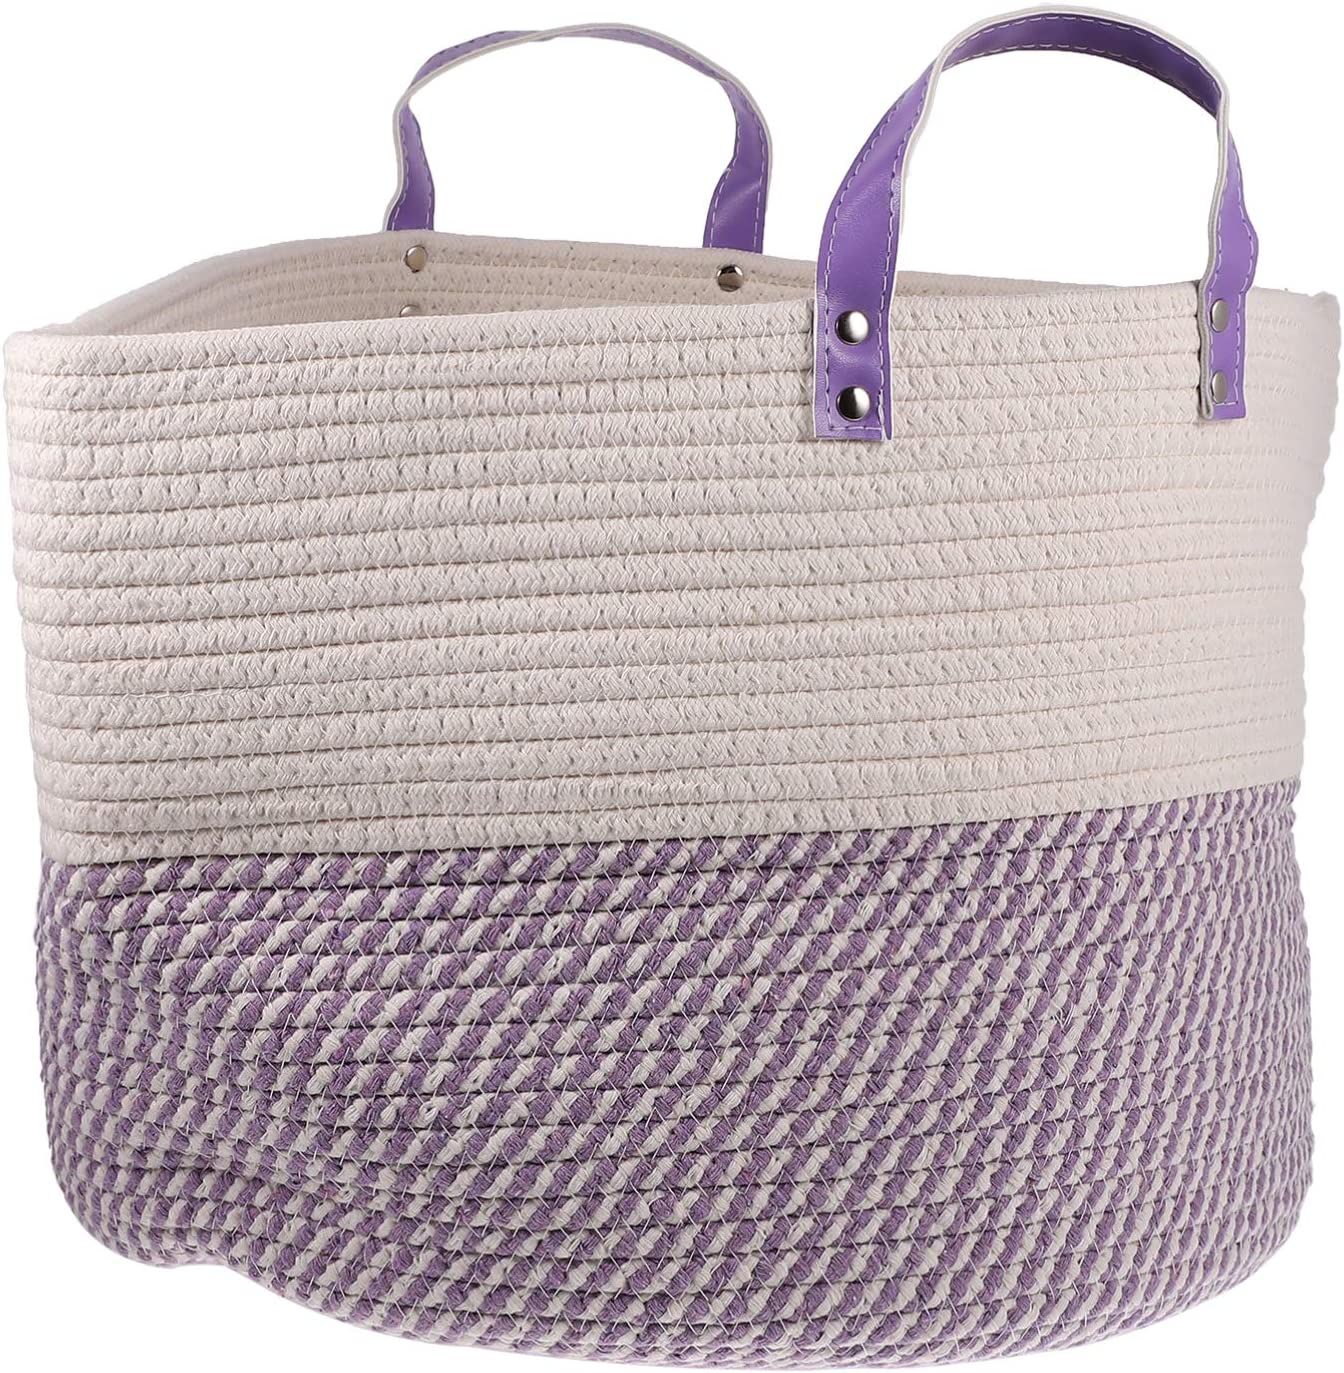 Inexpensive GARNECK Rope Basket Storage B Blanket Safety and trust Towels Laundry